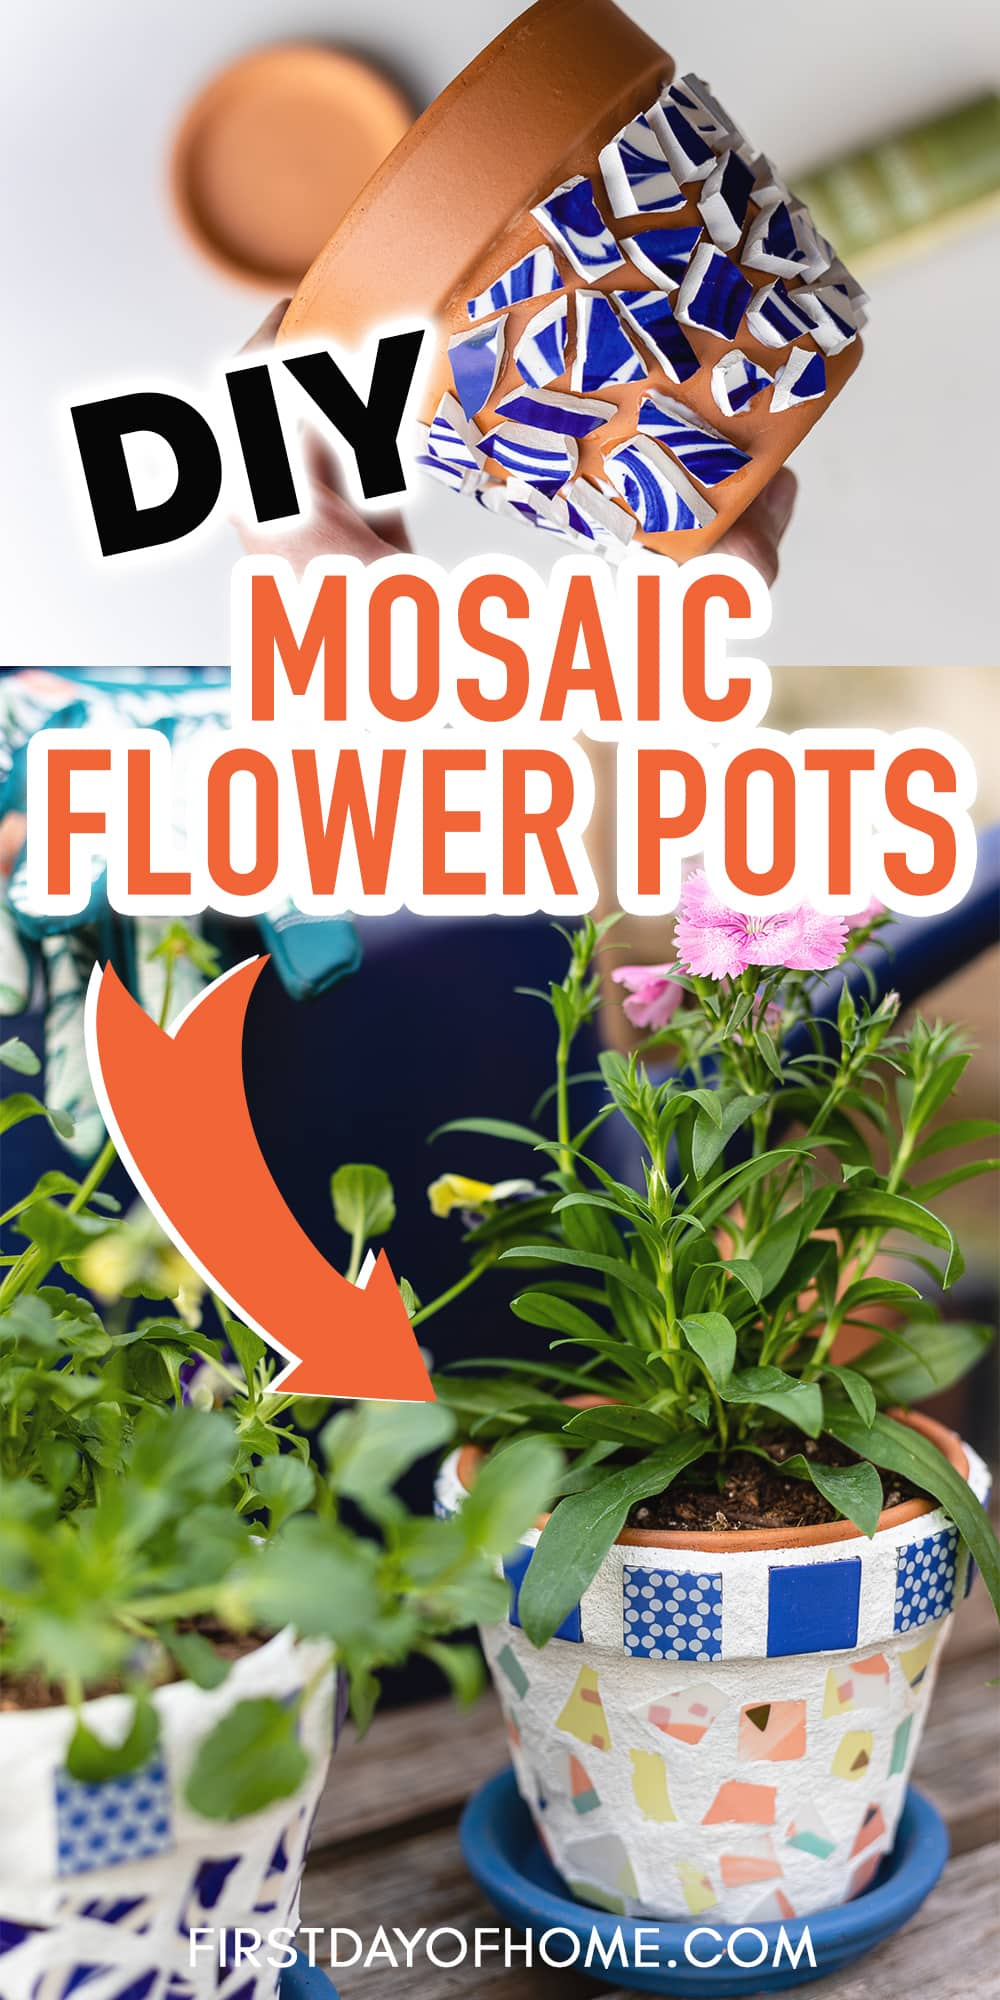 "Broken plate mosaic flower pots with text overlay reading ""DIY Mosaic Flower Pots"""